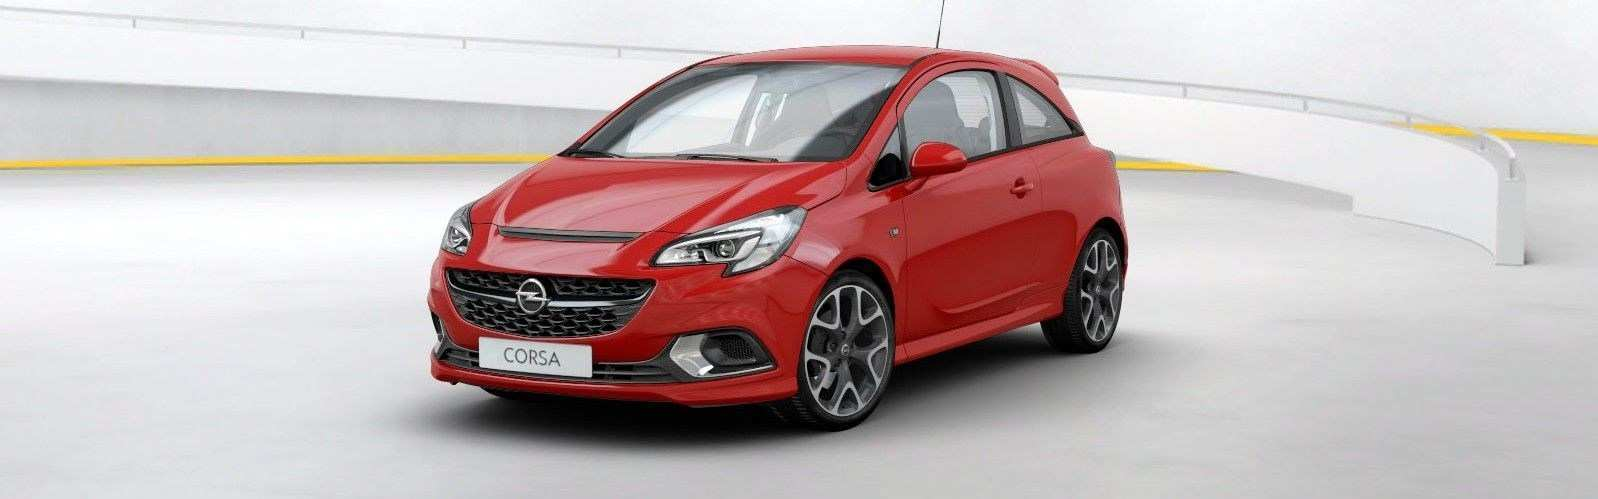 81 The Best 2020 Vauxhall Corsa VXR Pictures